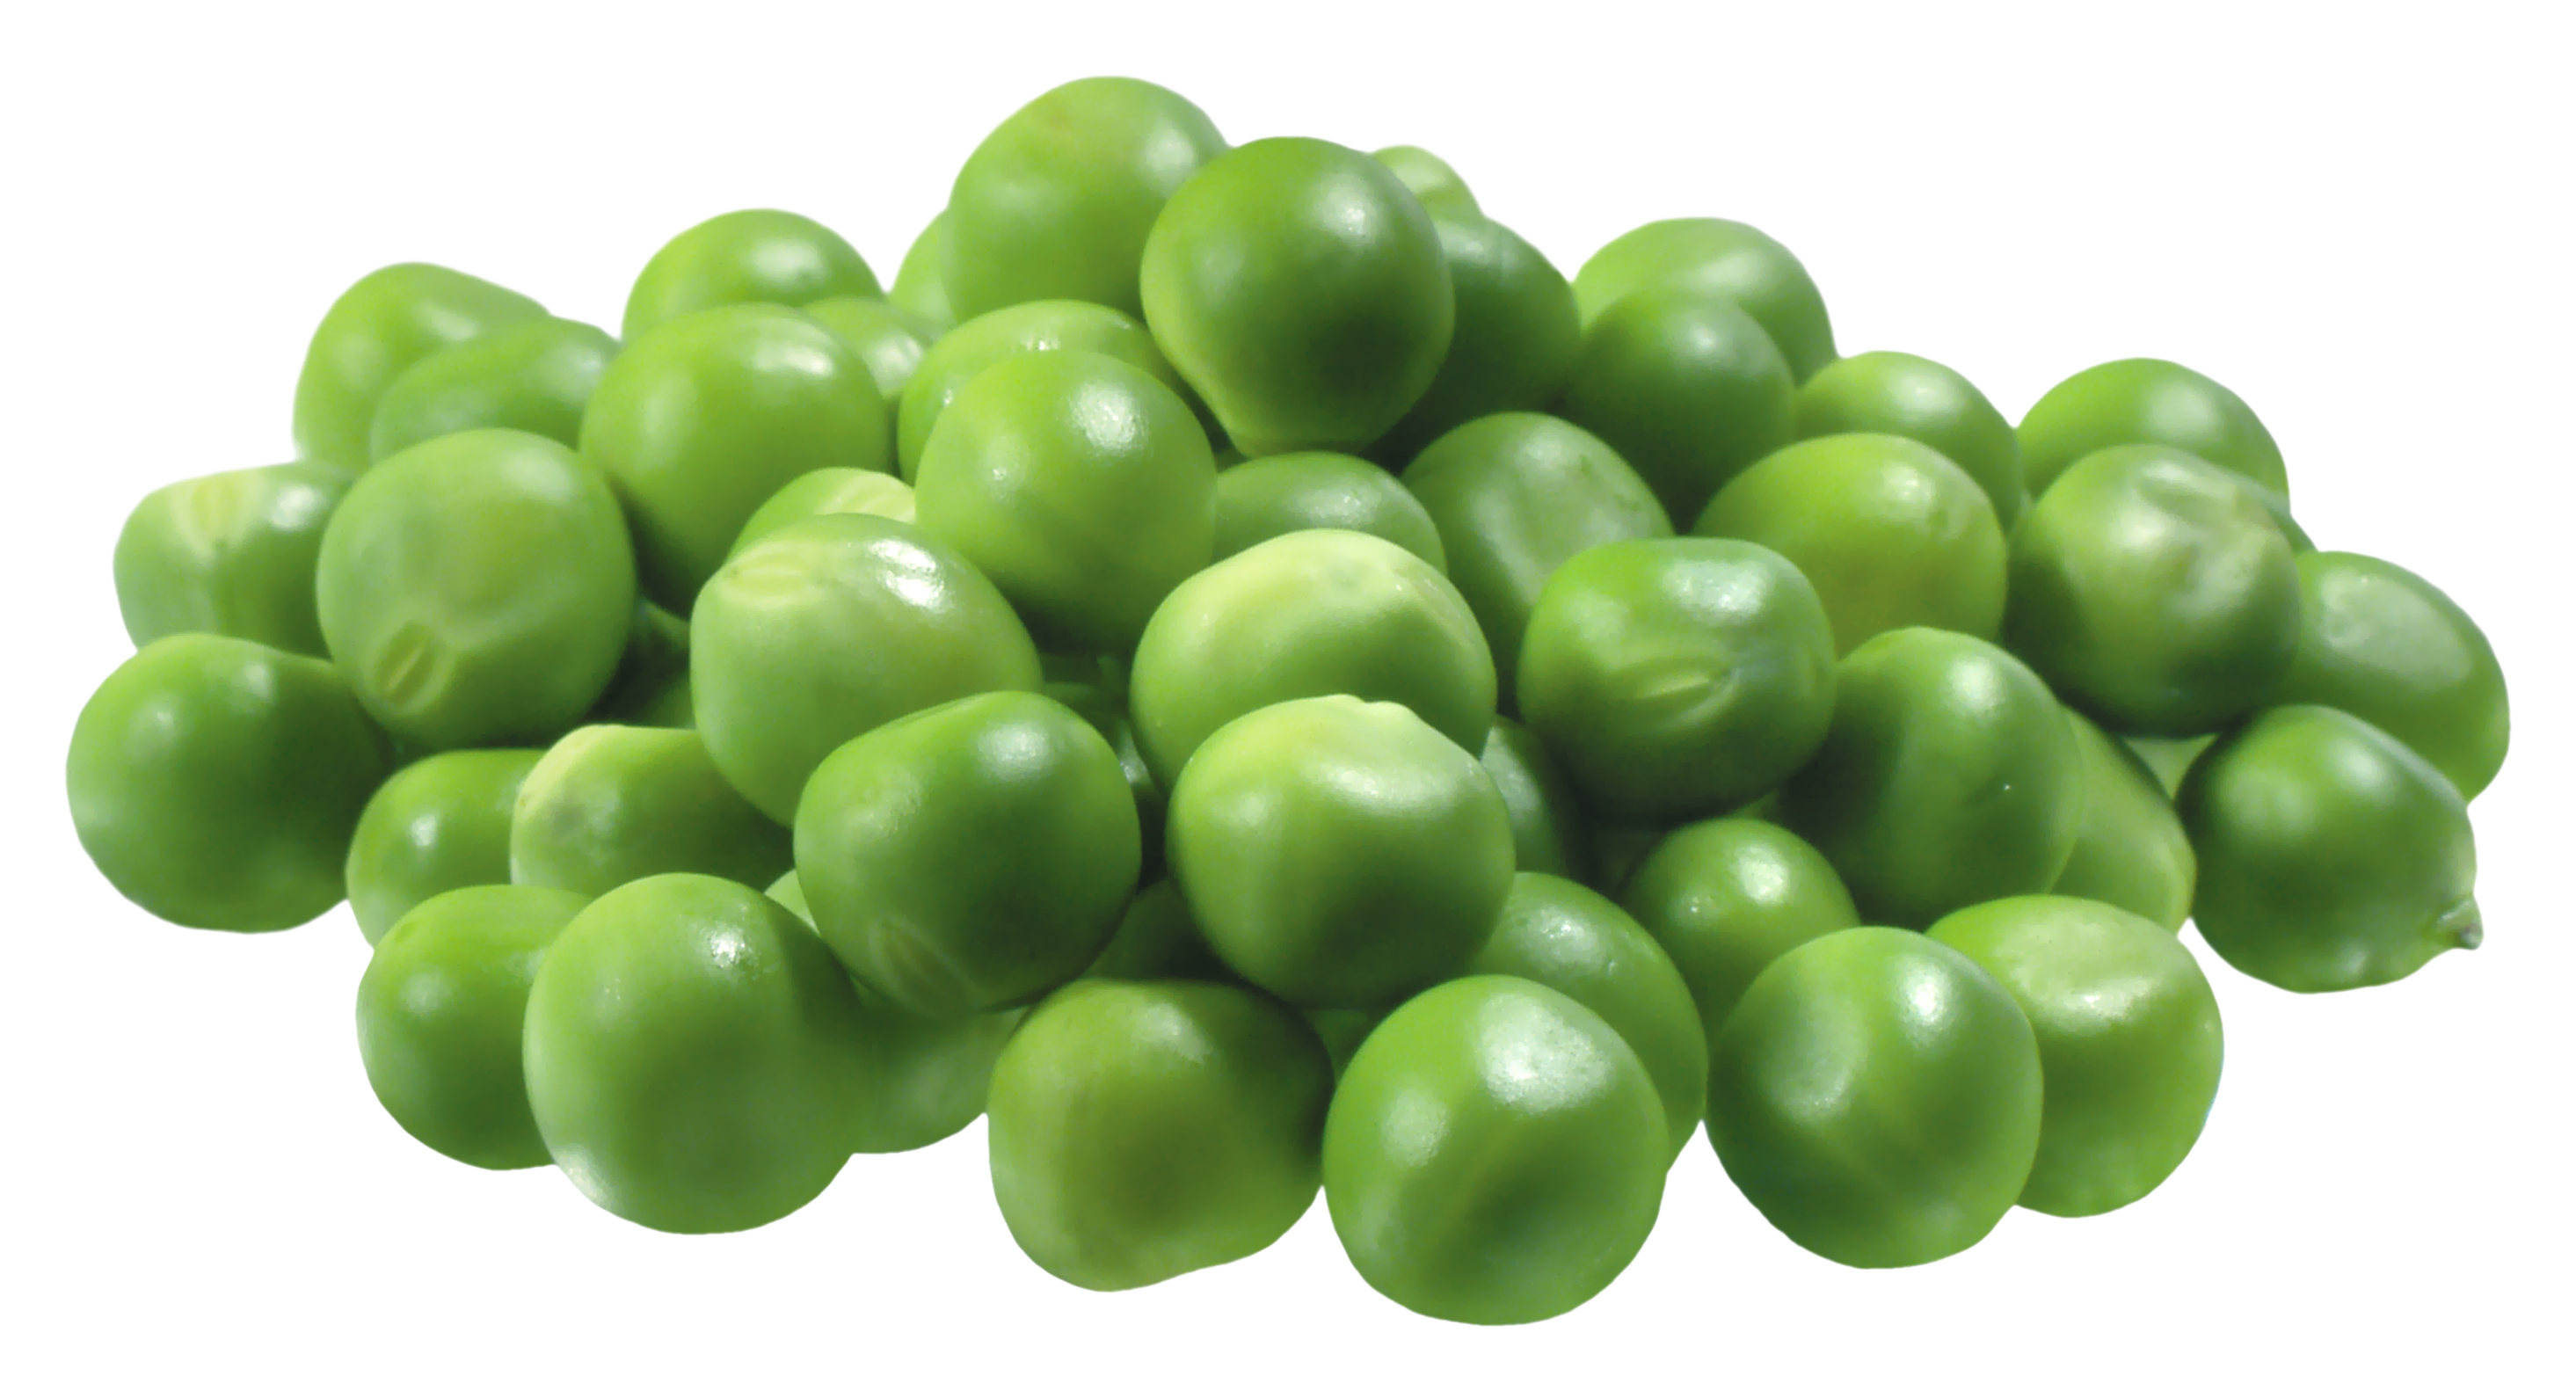 Clipart vegetables pea. Png picture gallery yopriceville